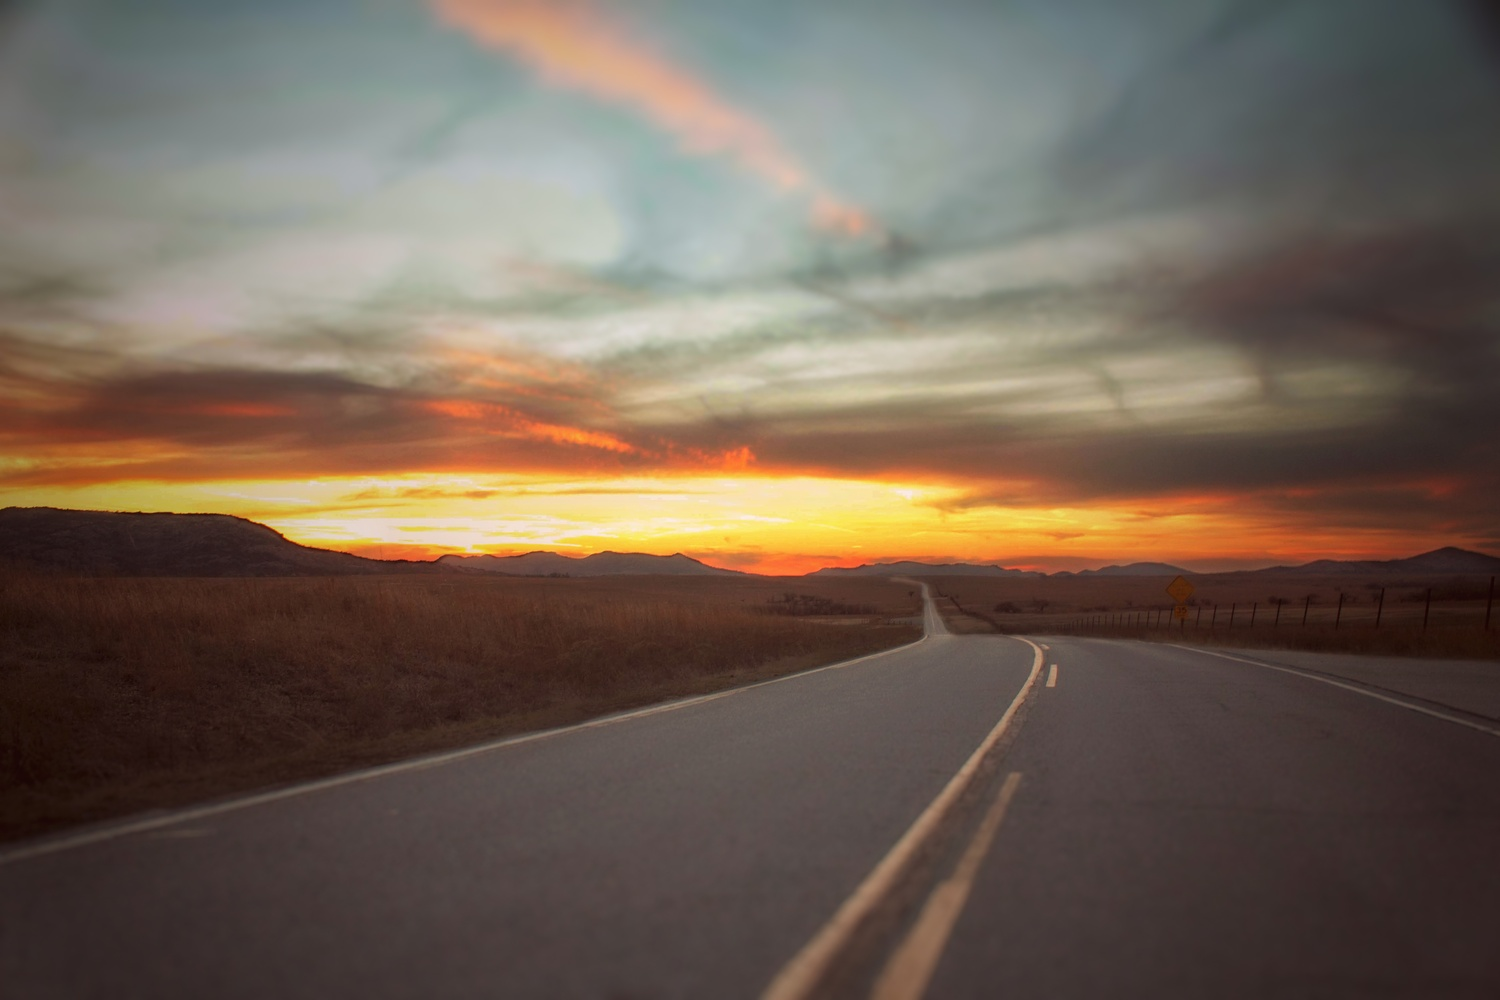 Sunset Drive by Bobby Wood